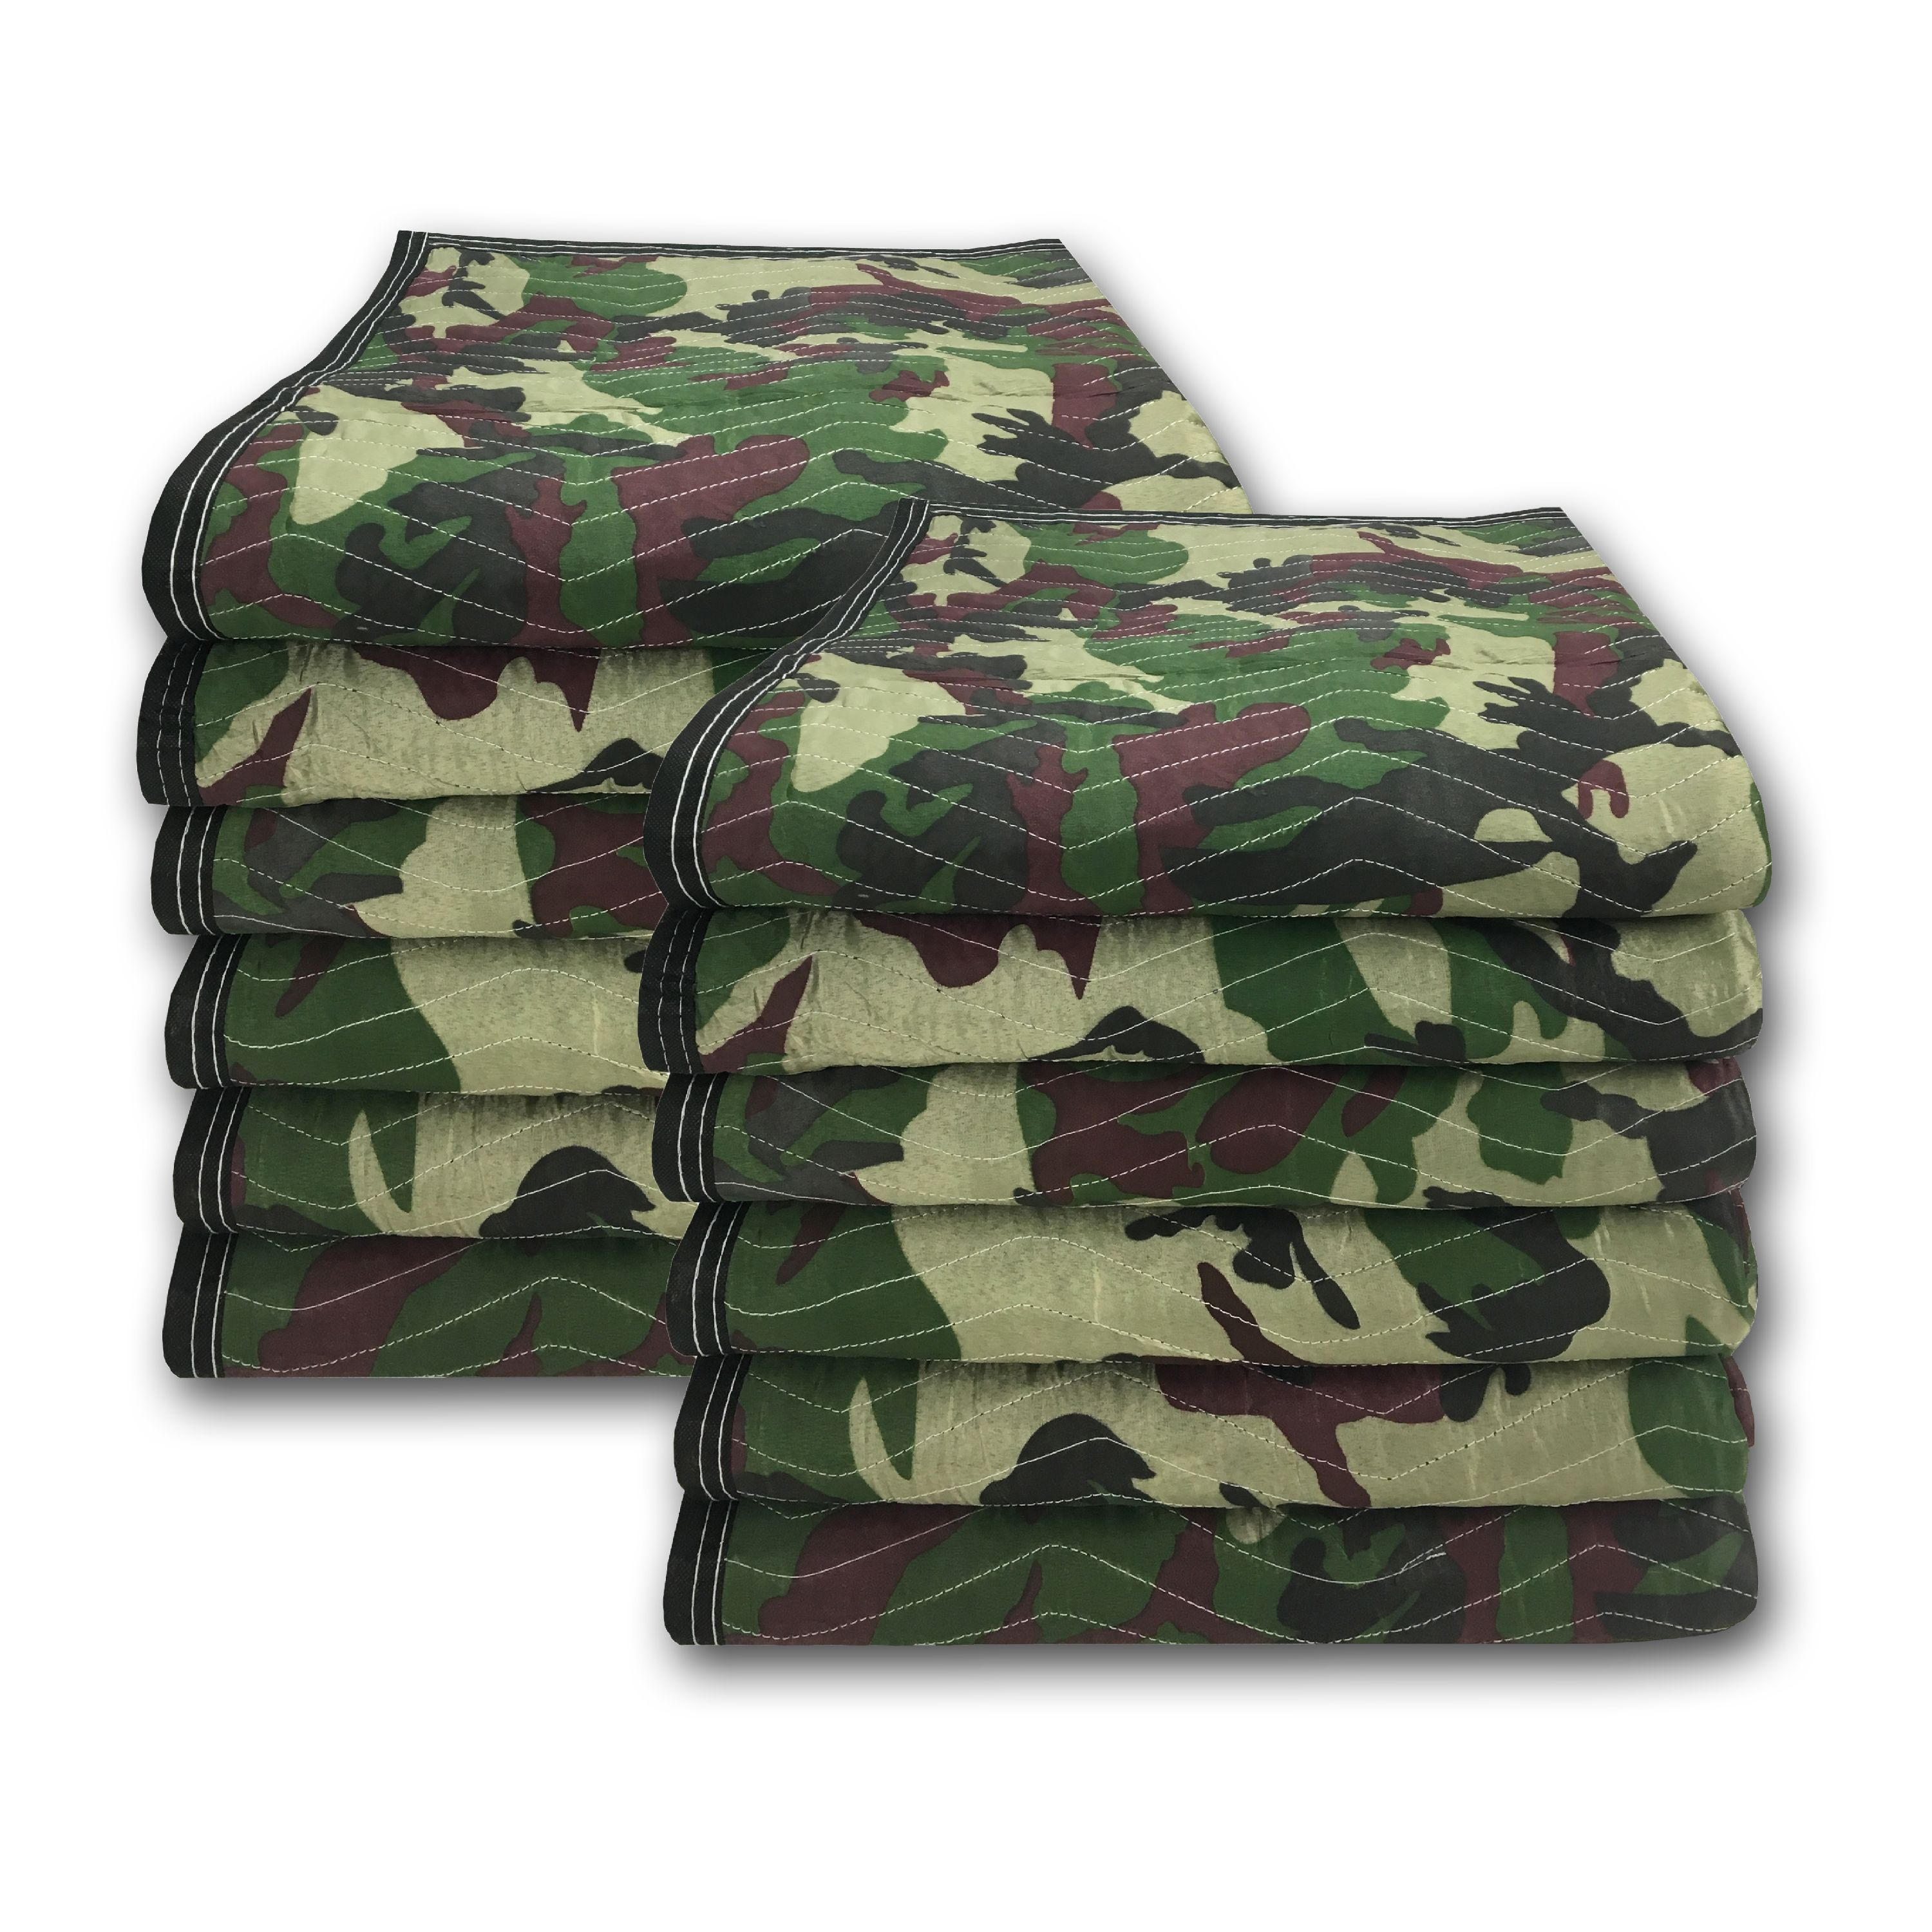 Uboxes Camo Moving Blankets, 72 x 80 in, 5.4lbs each, 12 Pack